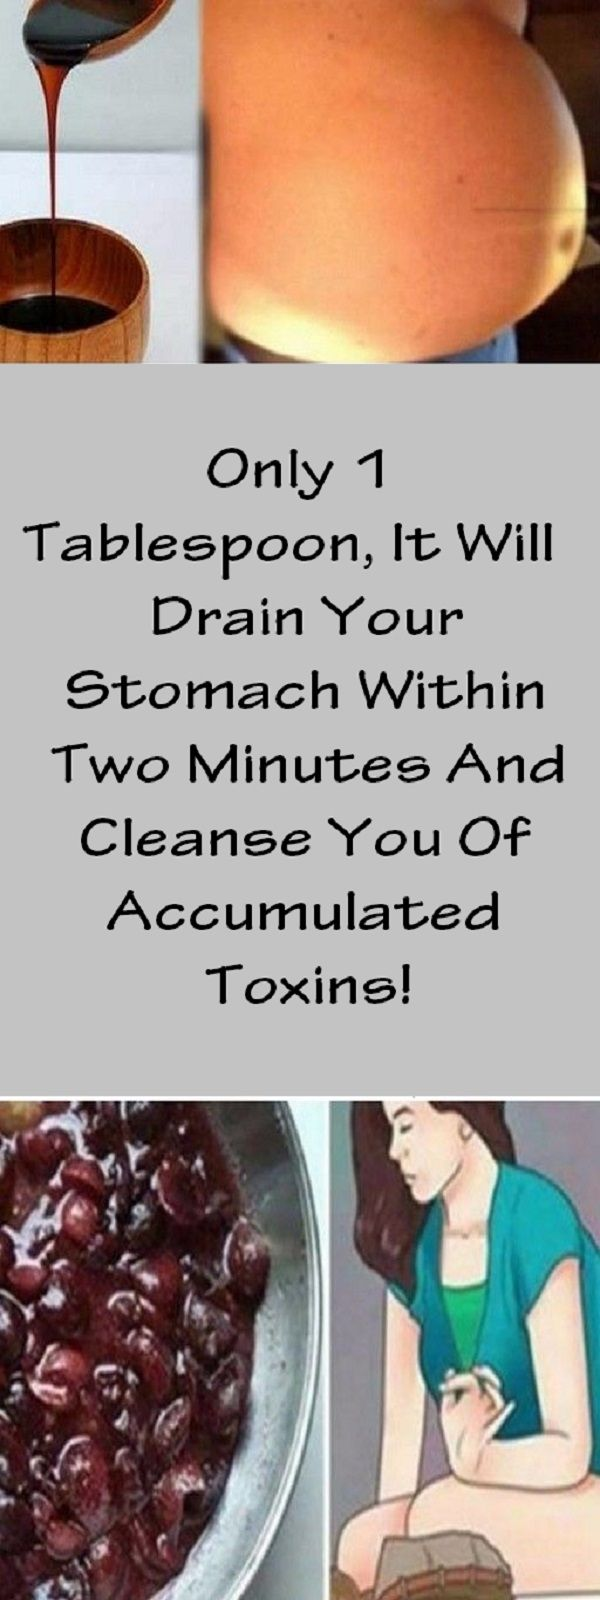 Only 1 Tablespoon, It Will Drain Your Stomach Within Two Minutes And Cleanse You Of Accumulated Toxins!